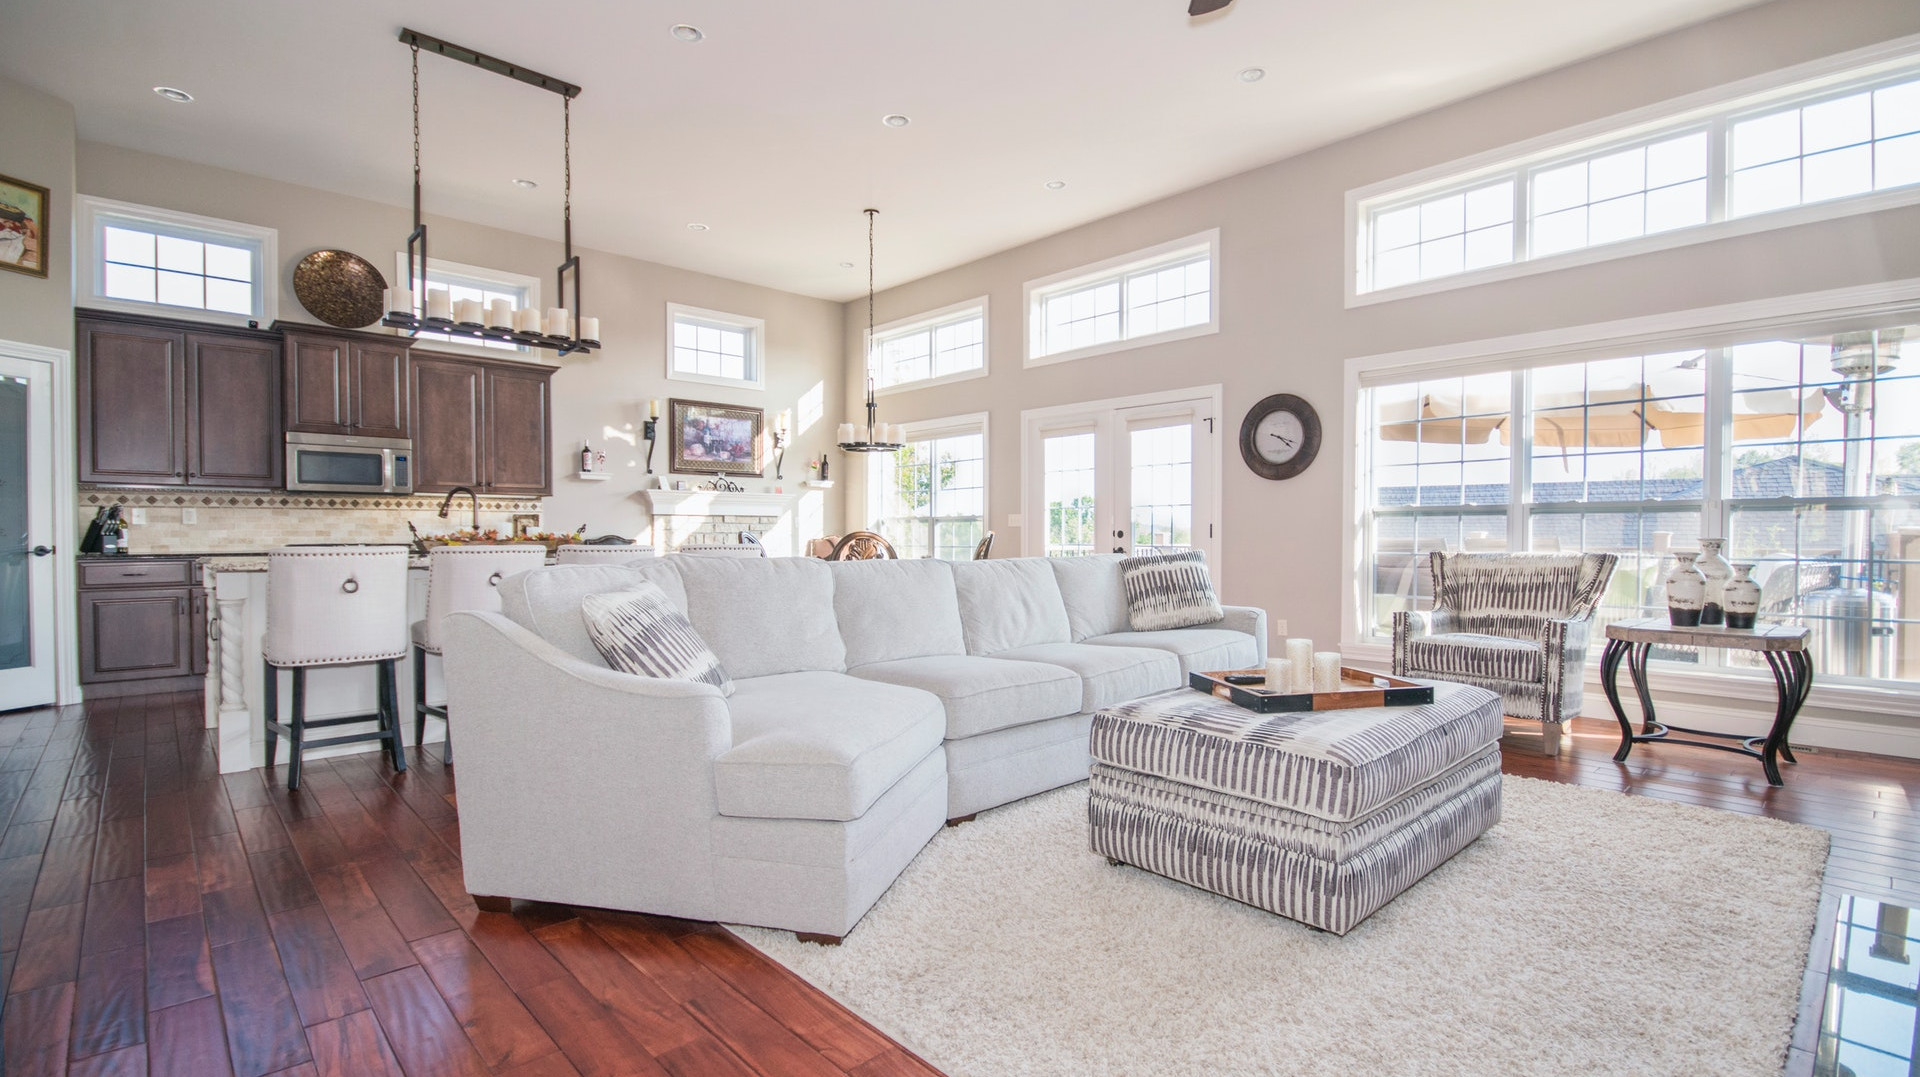 Steal This Look: Farmhouse Living Room Inspirations